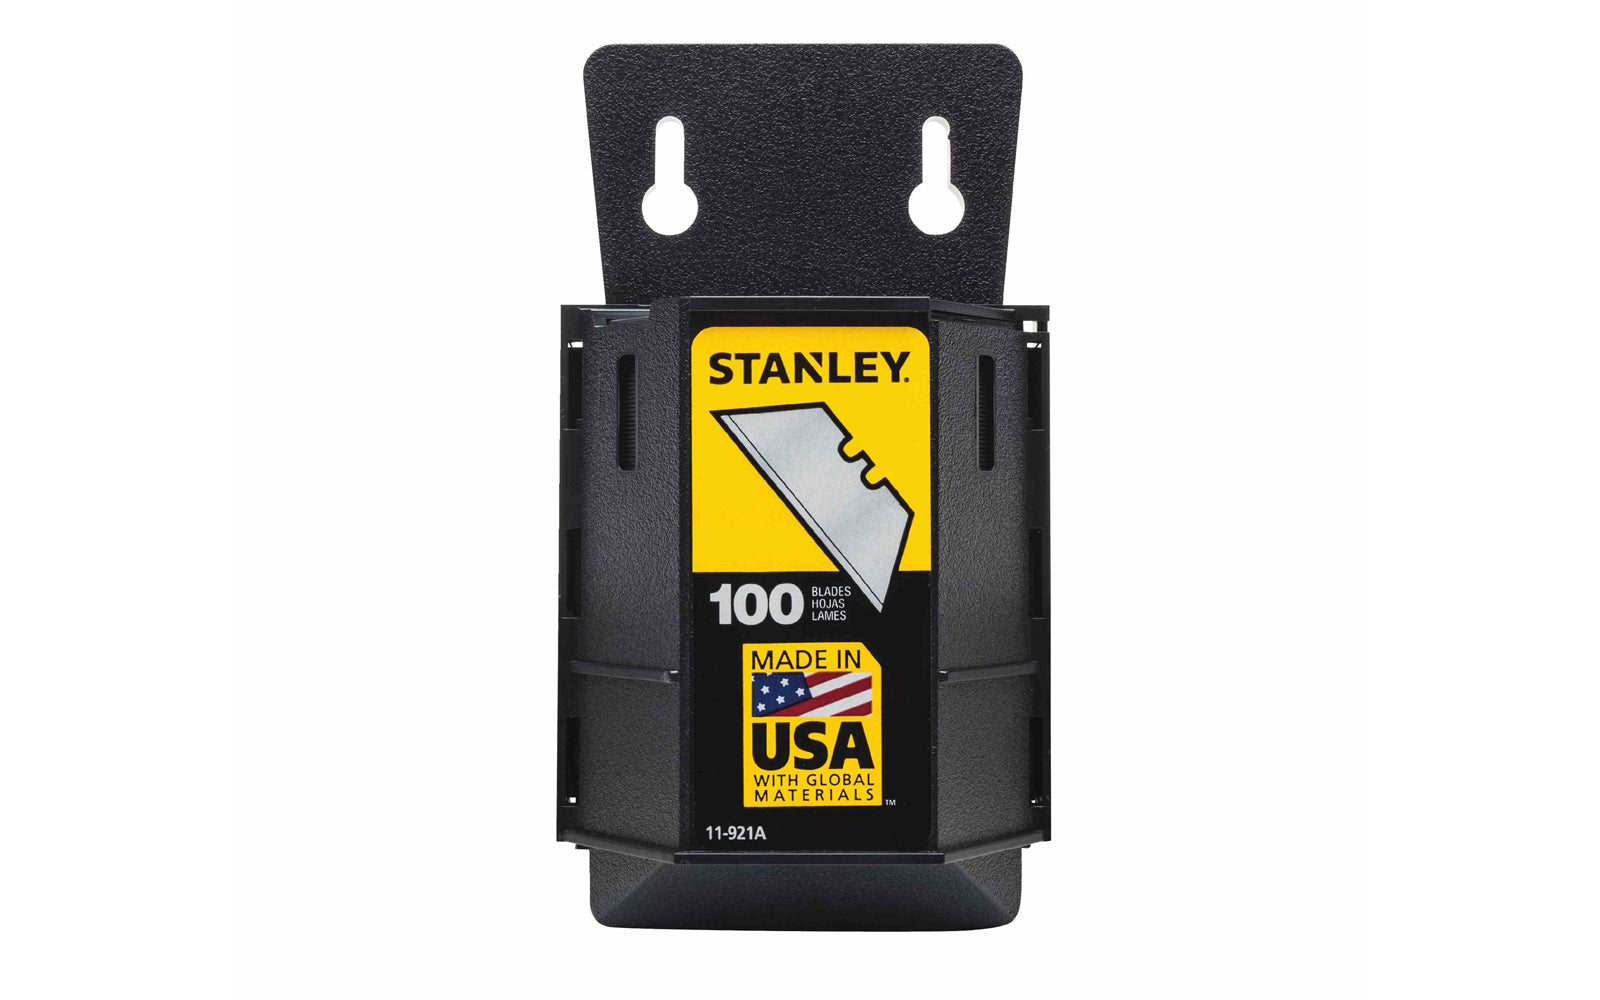 Stanley Heavy Duty Utility Blades With Dispenser ~ 11-921A - Made in USA - 100 Pack